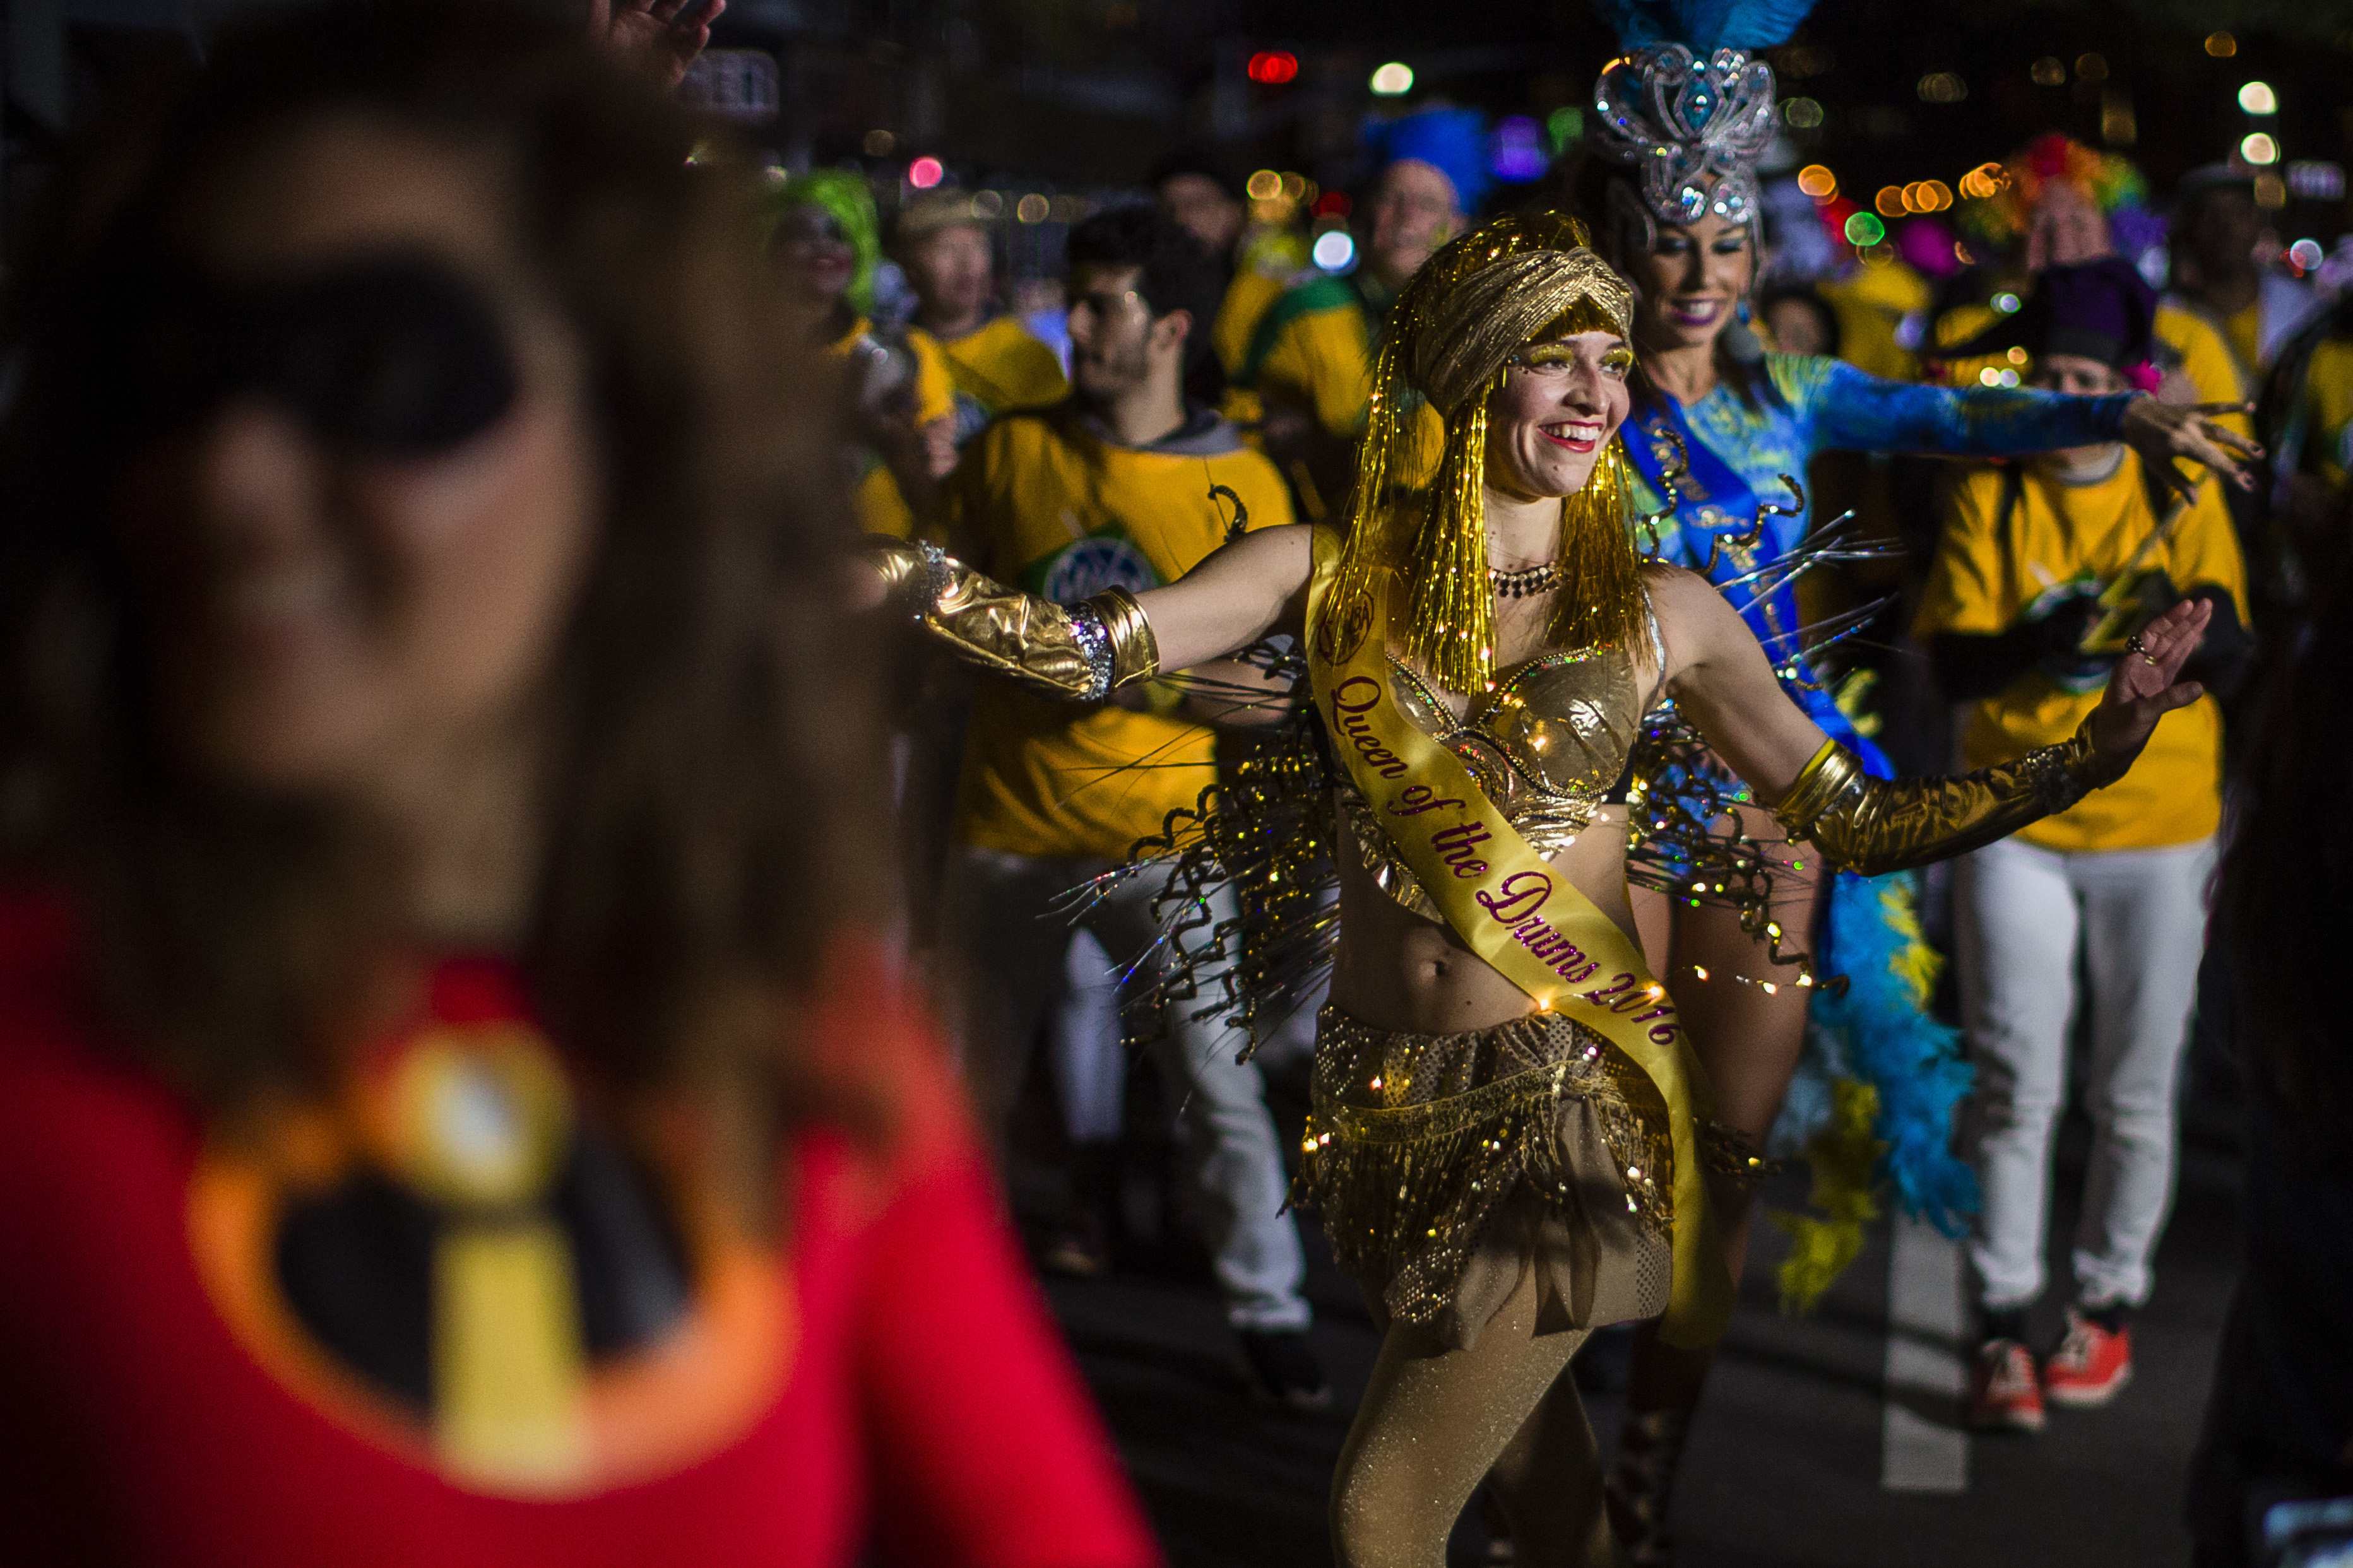 """<div class=""""meta image-caption""""><div class=""""origin-logo origin-image none""""><span>none</span></div><span class=""""caption-text"""">Revelers dance during the Greenwich Village Halloween Parade in New York, Monday, Oct. 31, 2016. (AP Photo/Andres Kudacki)</span></div>"""